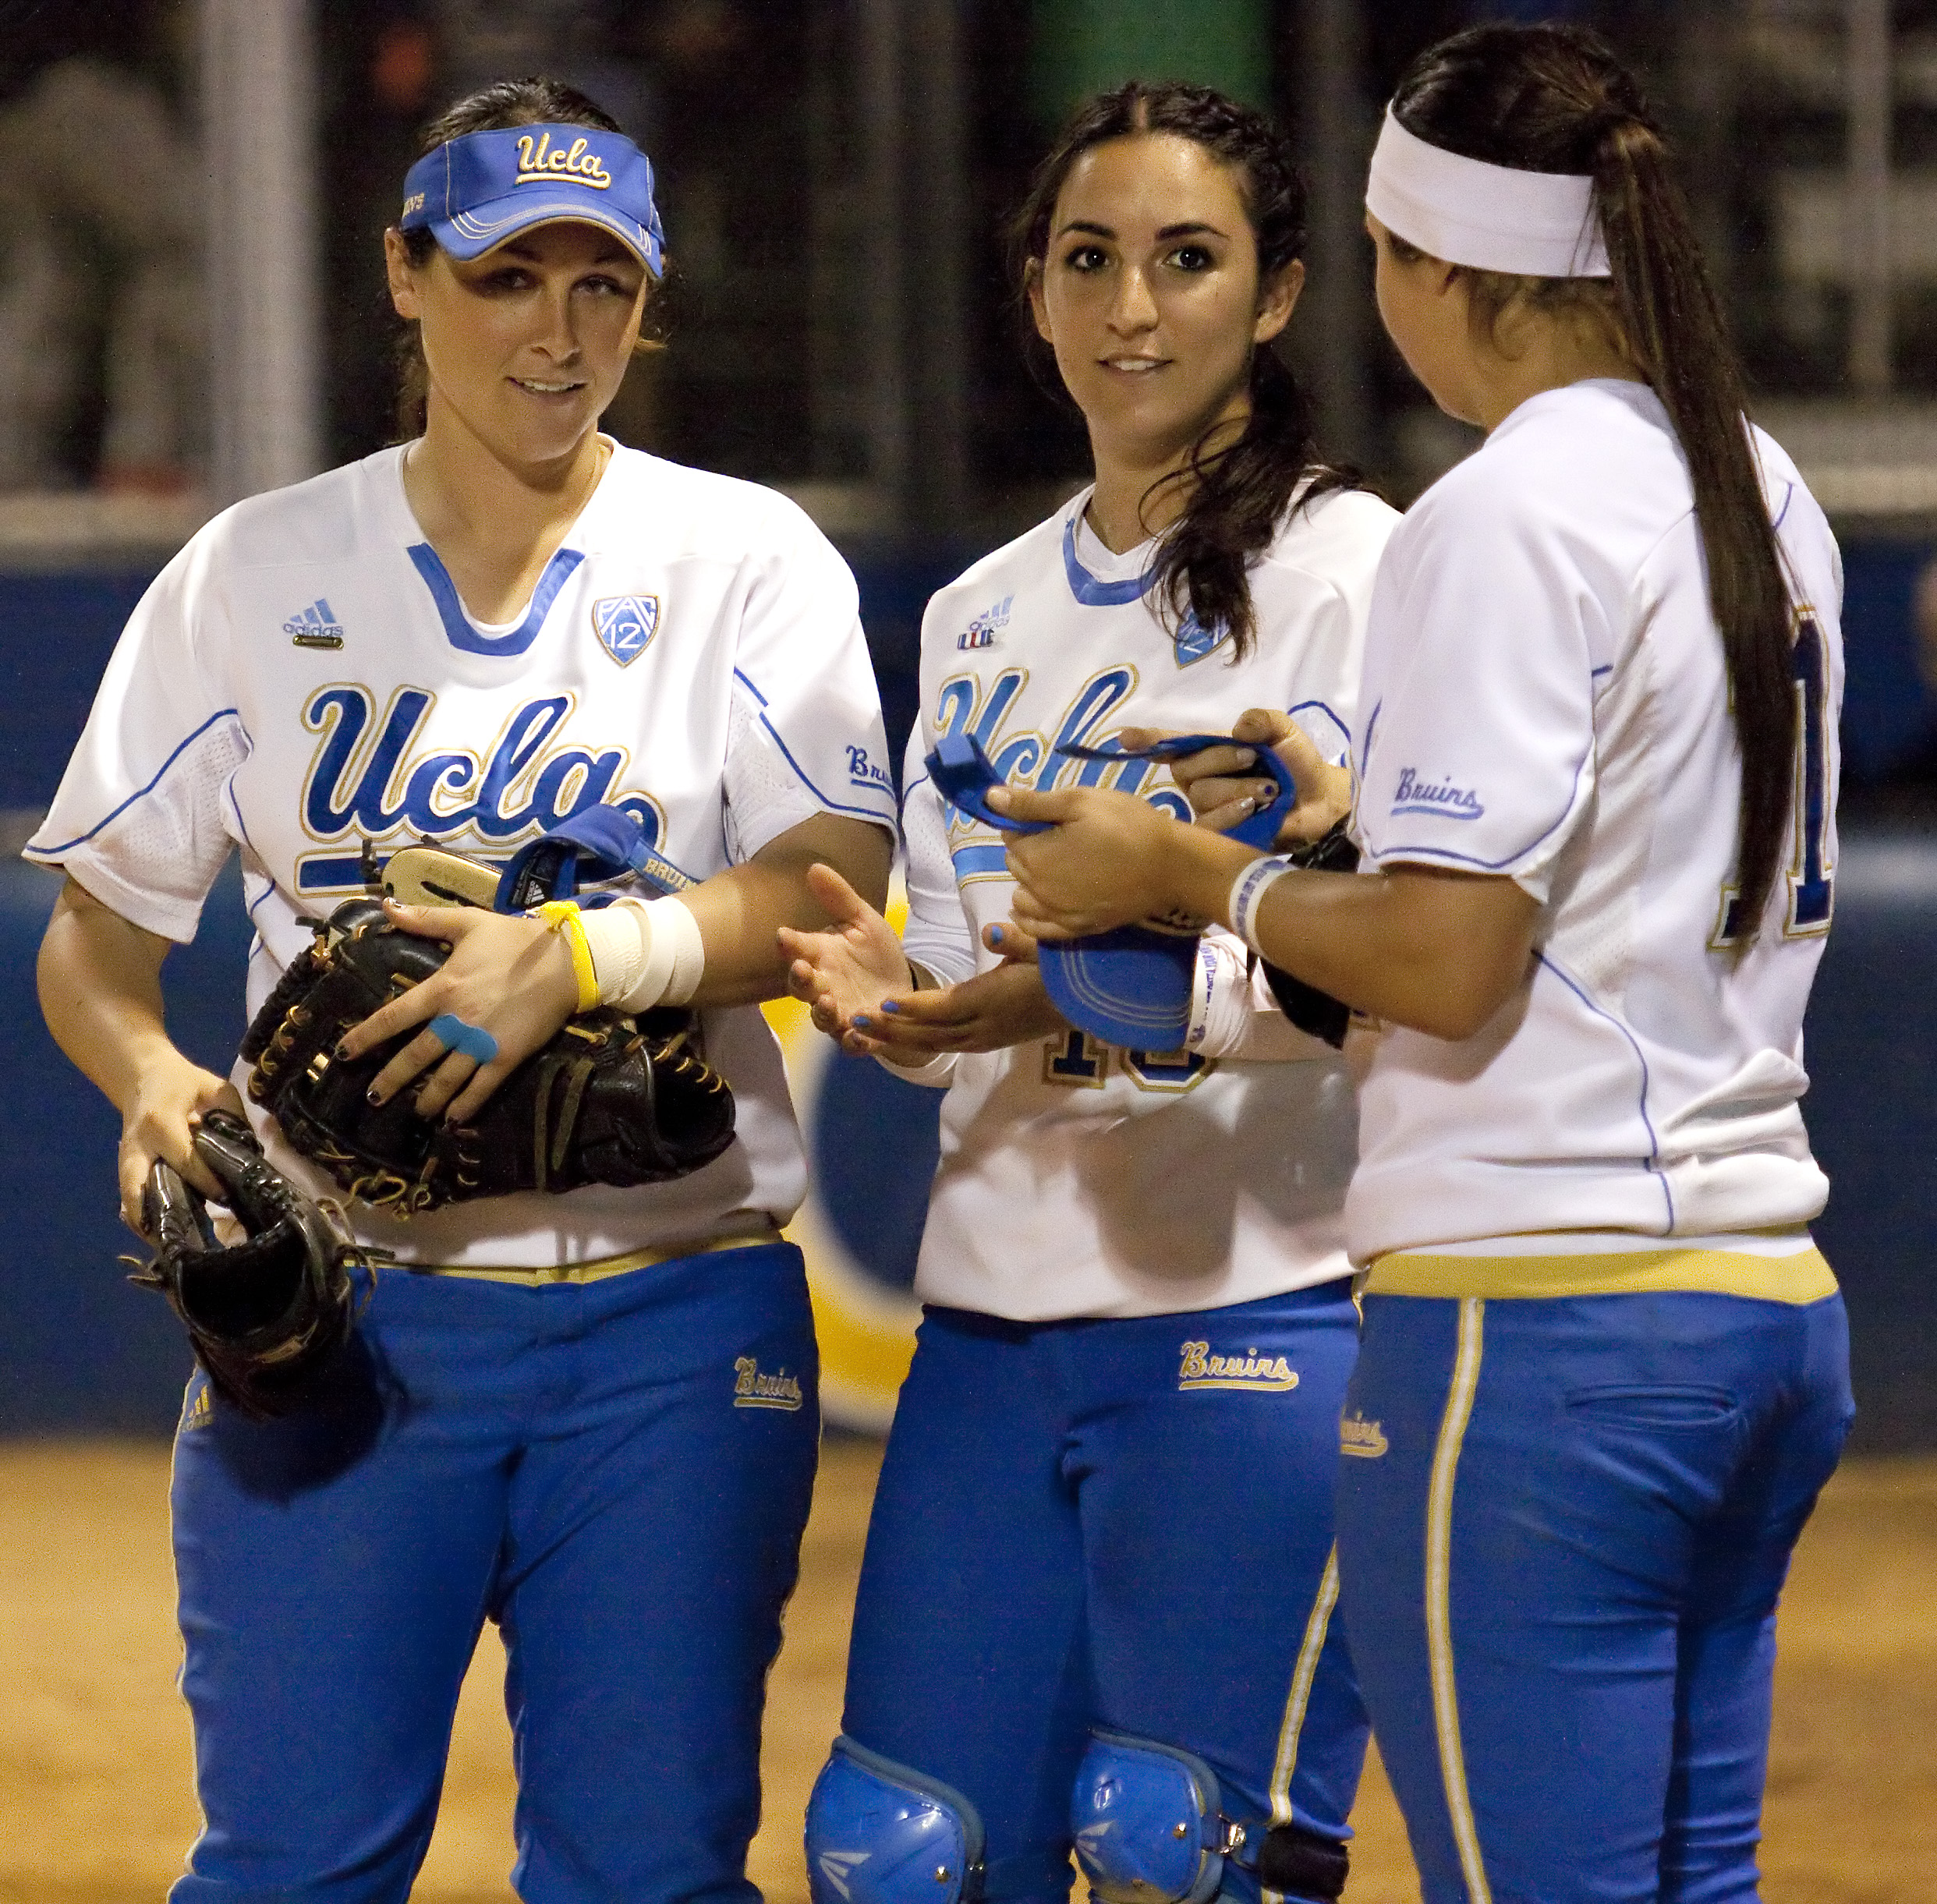 Senior utilities Dani Yudin and Andrea Harrison and freshman infielder Stephany LaRosa will lead the No. 12 Bruins into regional play against Hofstra today at Easton Stadium.